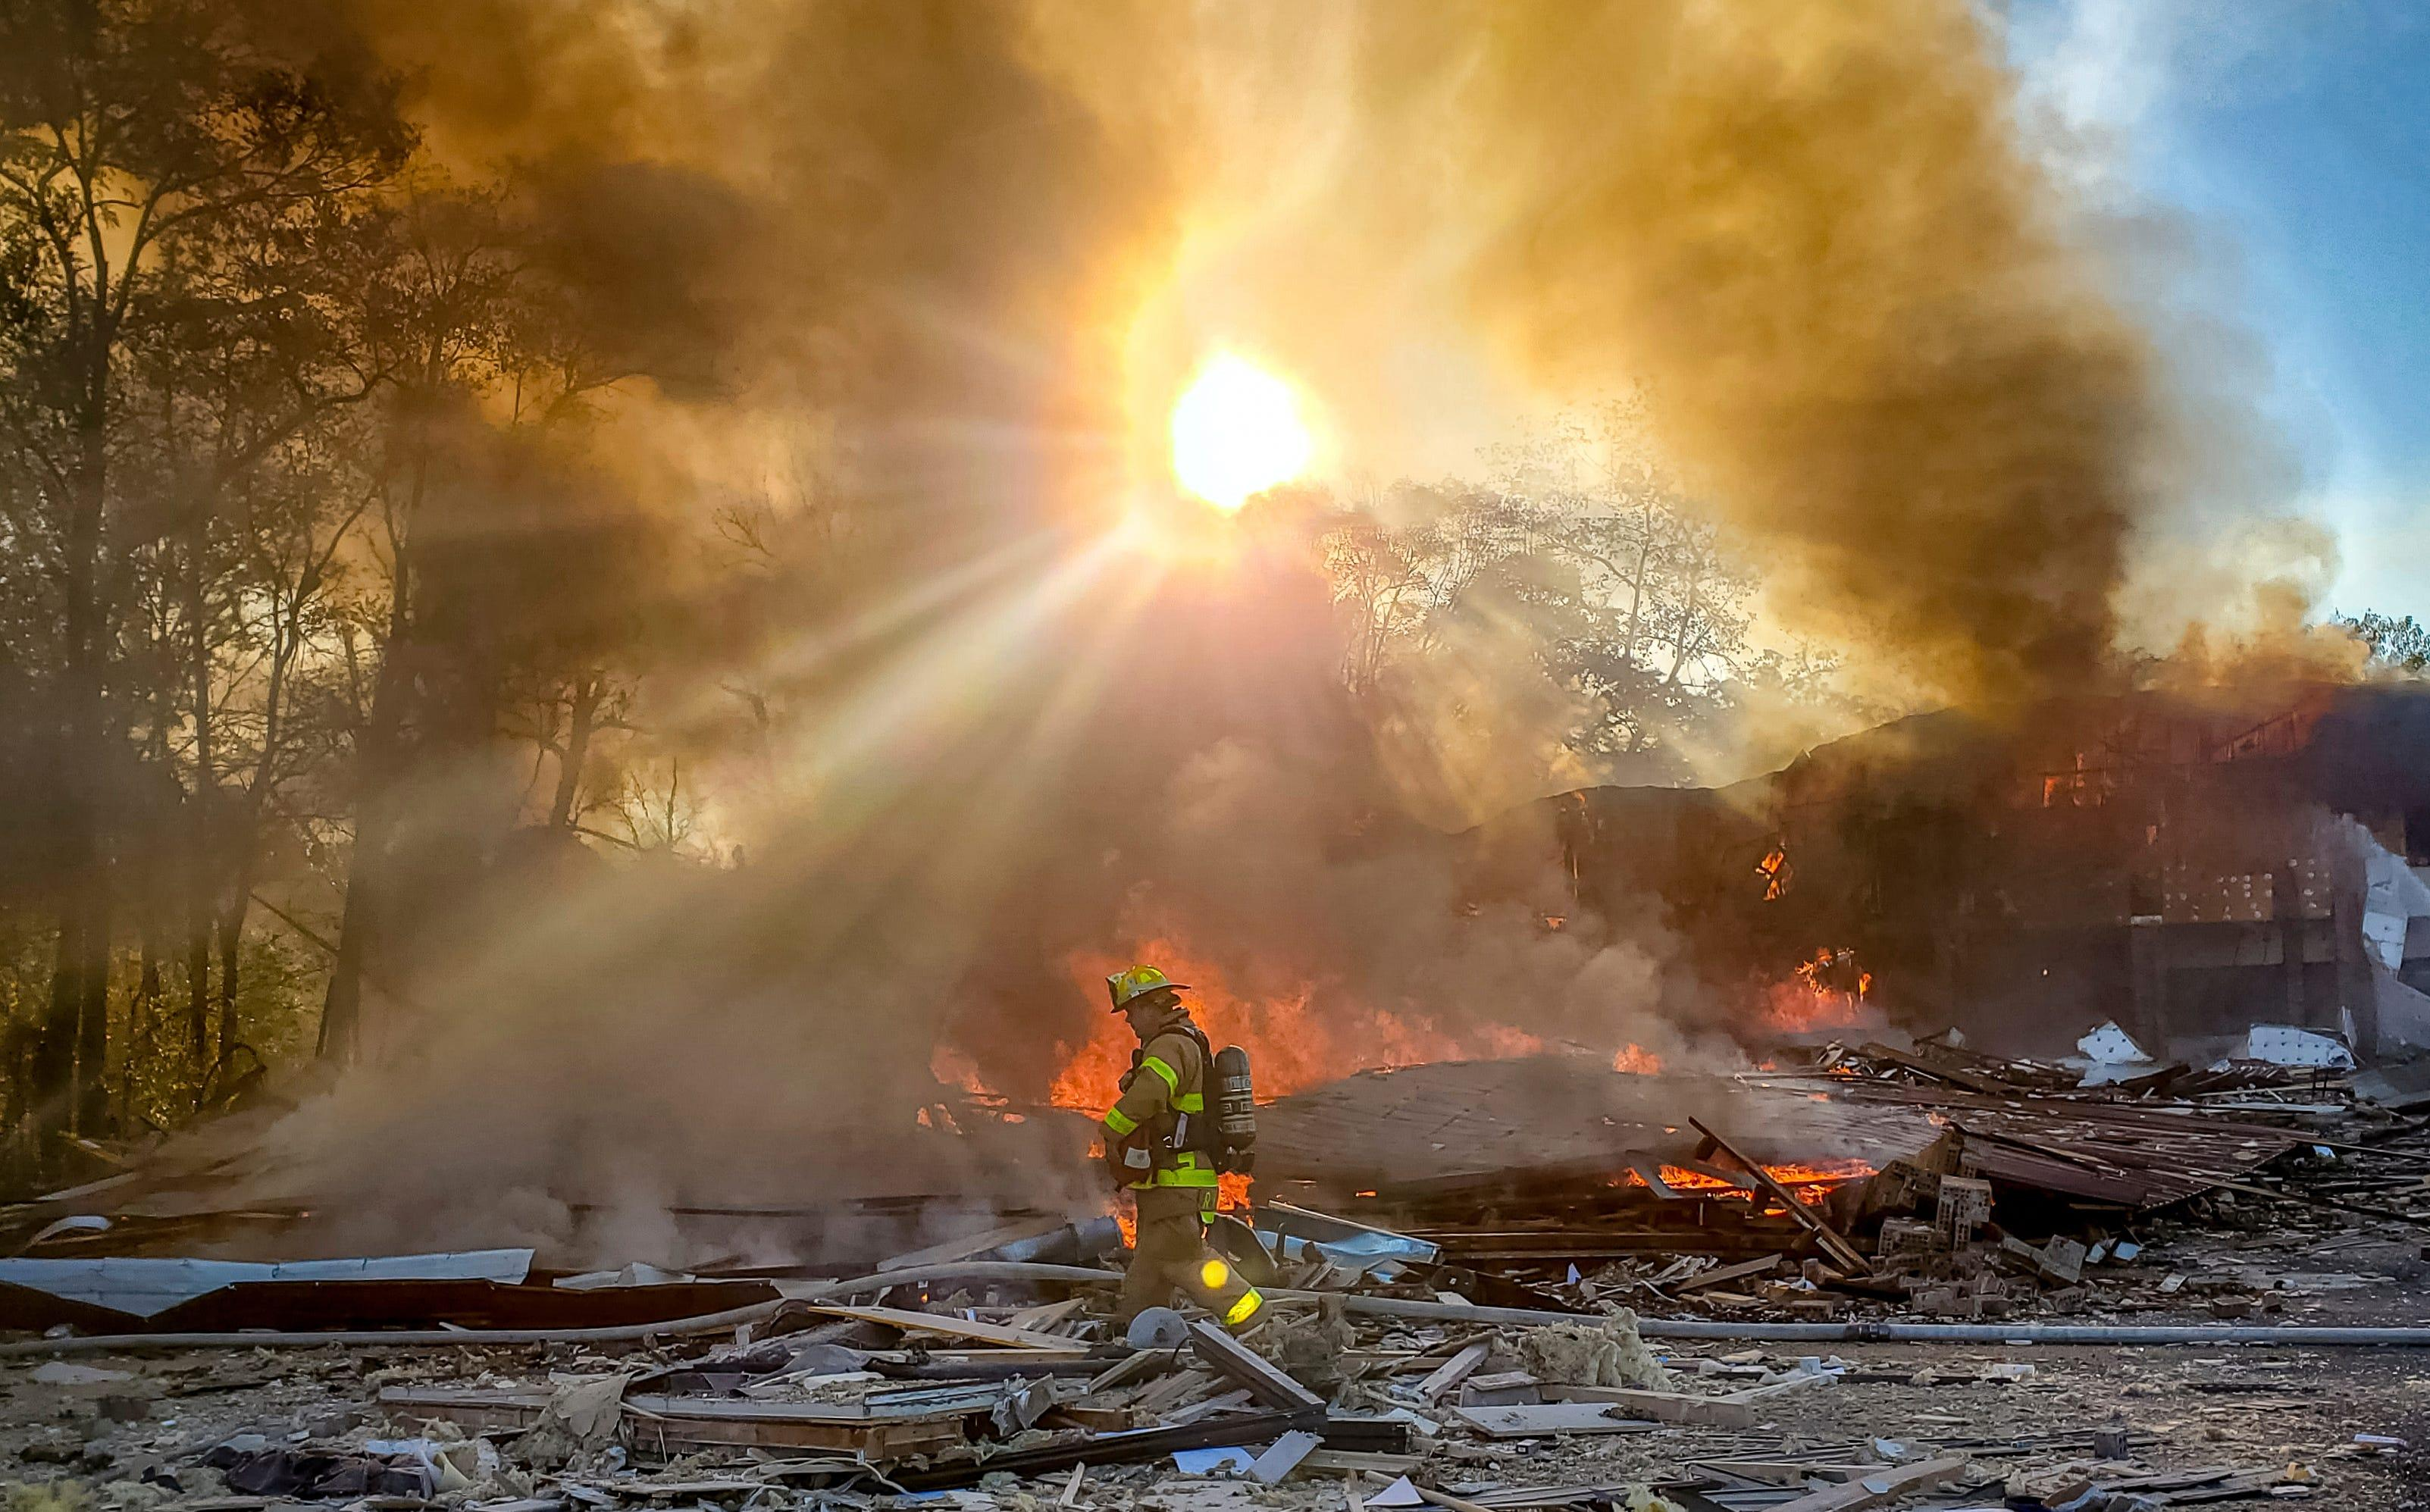 'I saw a big mushroom cloud': Clues sought in Virginia shopping center explosion that rattled residents for miles